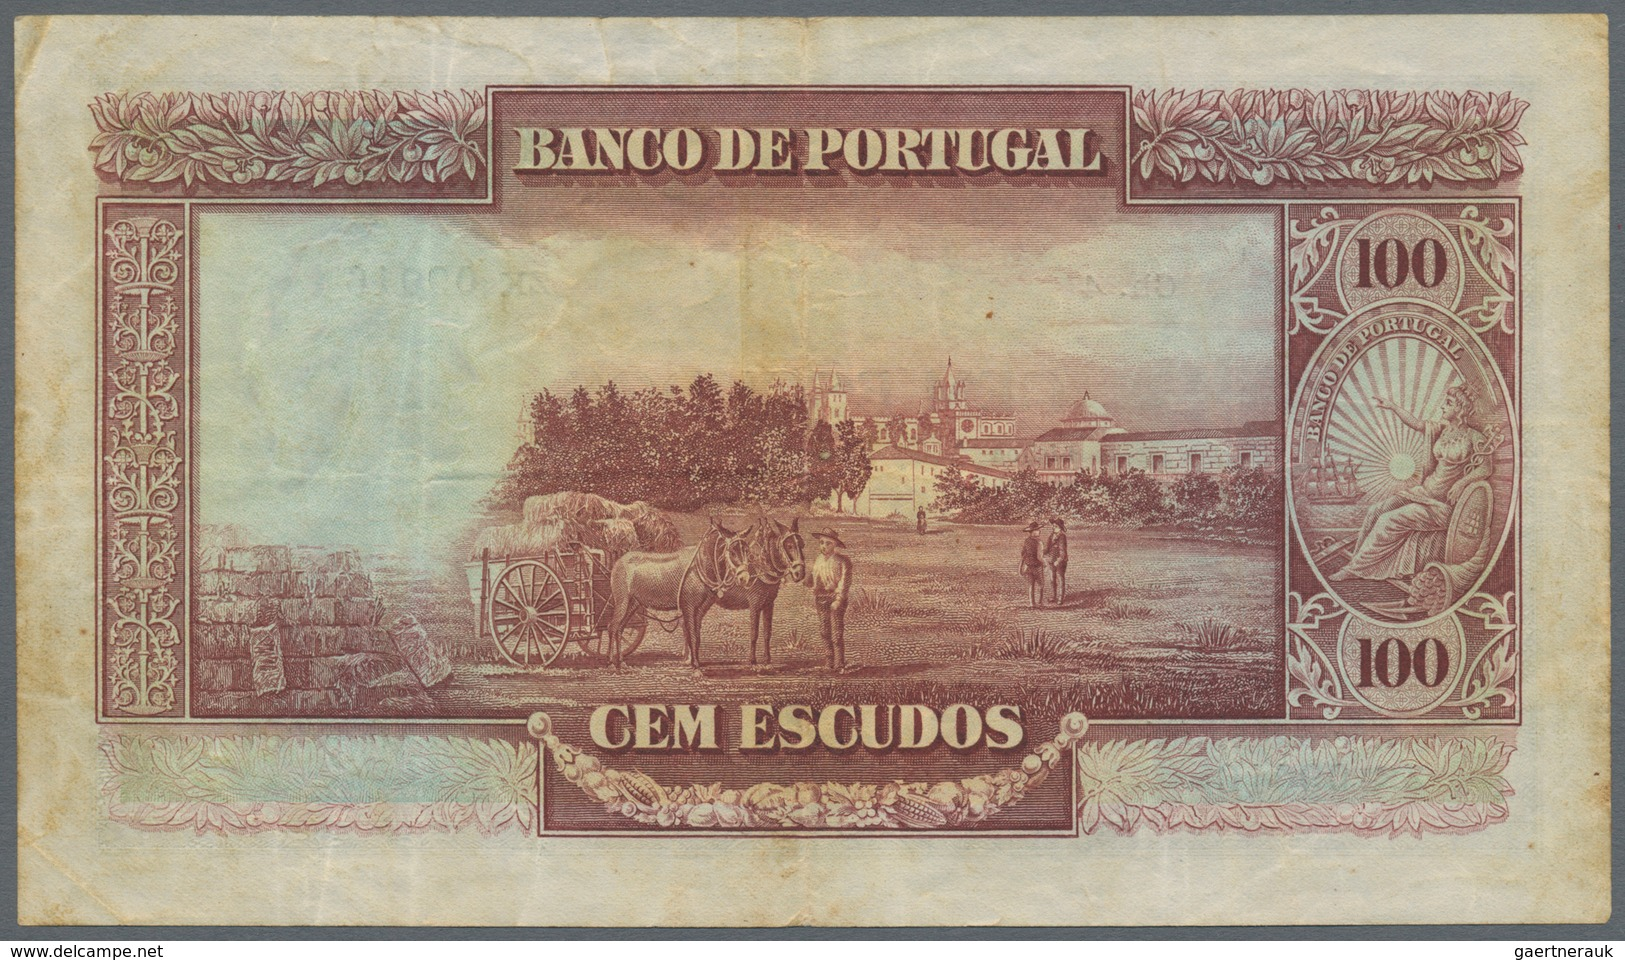 Portugal: Banco De Portugal 100 Escudos 1930, P.140, Lightly Stained Paper, Some Tiny Spots And A Fe - Portugal